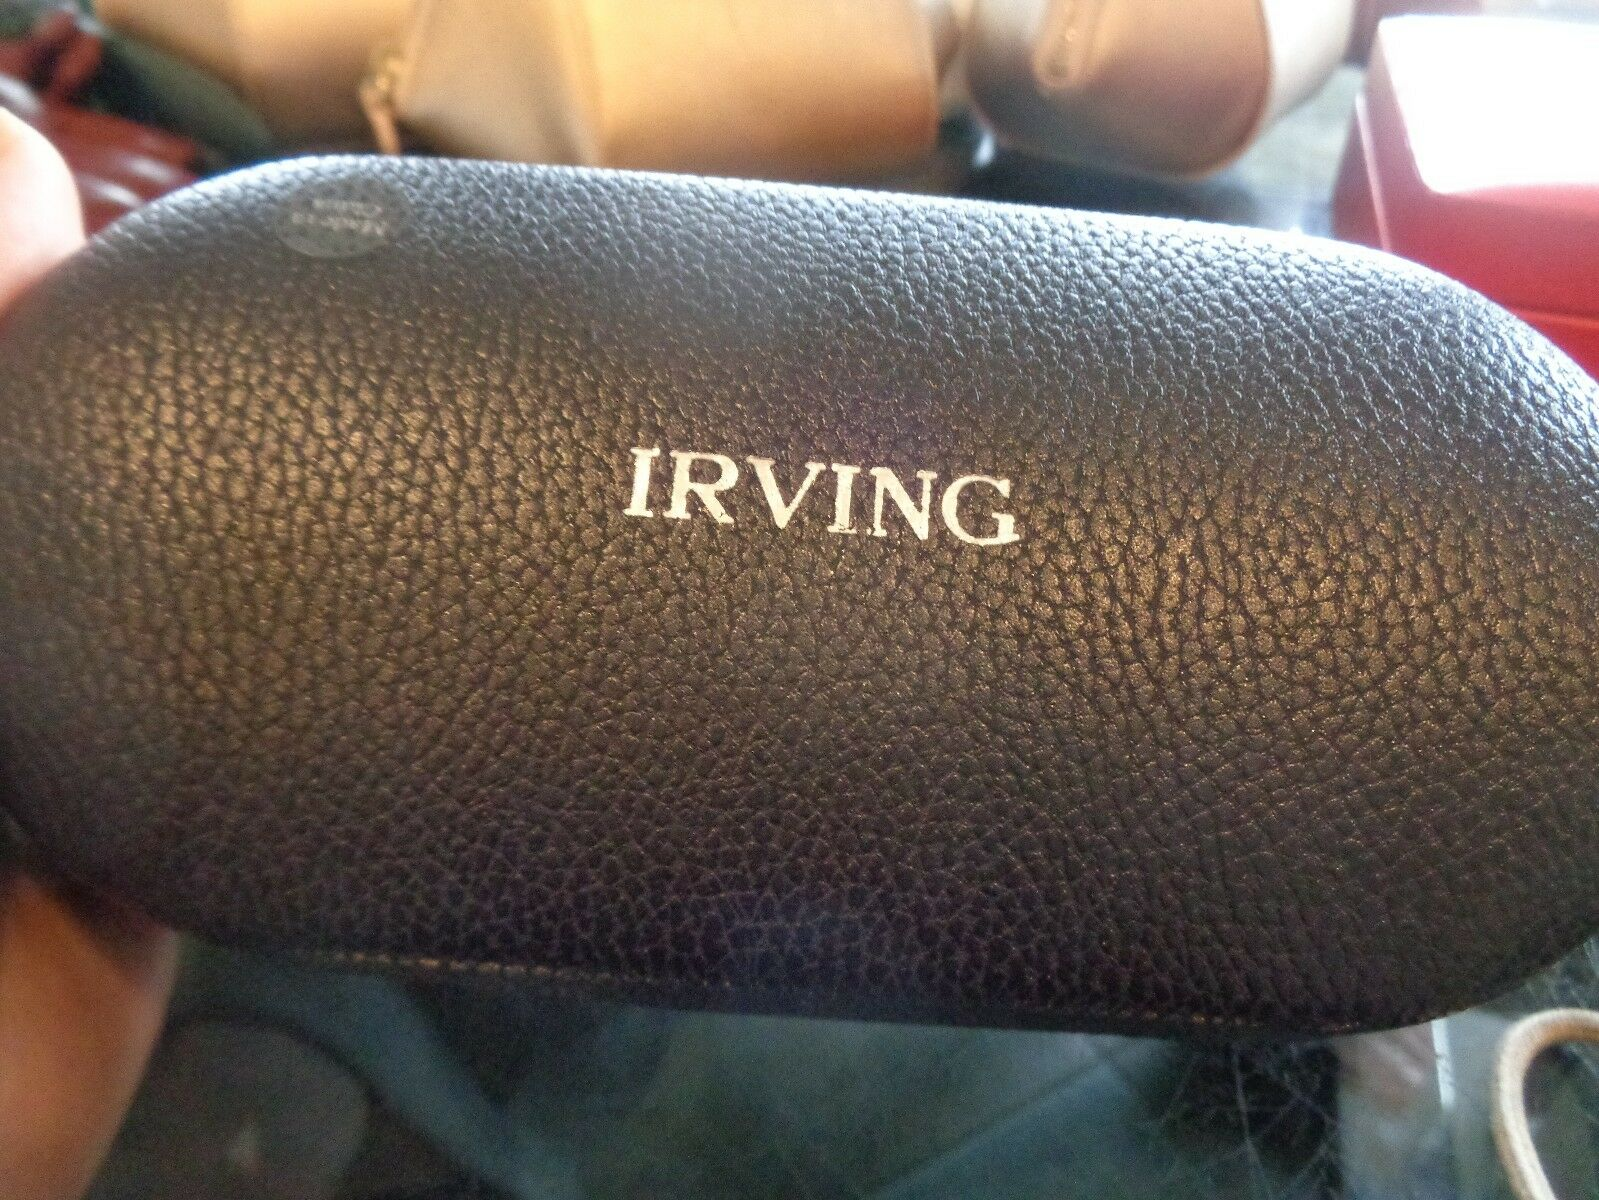 Mark and Graham leather dual sunglass case navy blue monogrammed Irving New